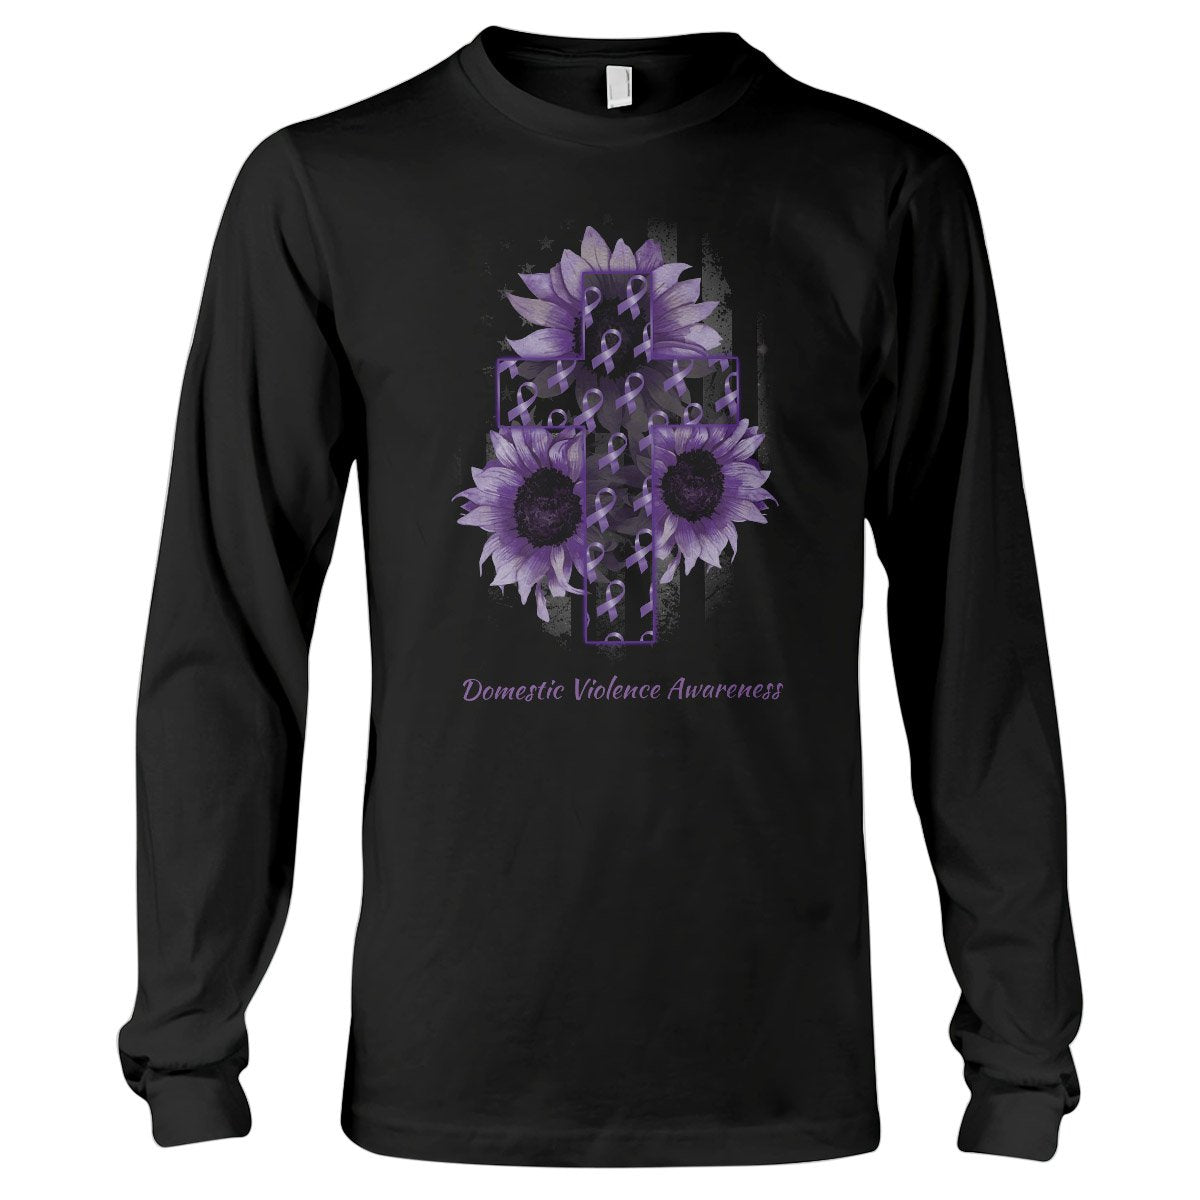 American Flag And The Cross Domestic Violence Awareness Long Sleeve T-Shirt